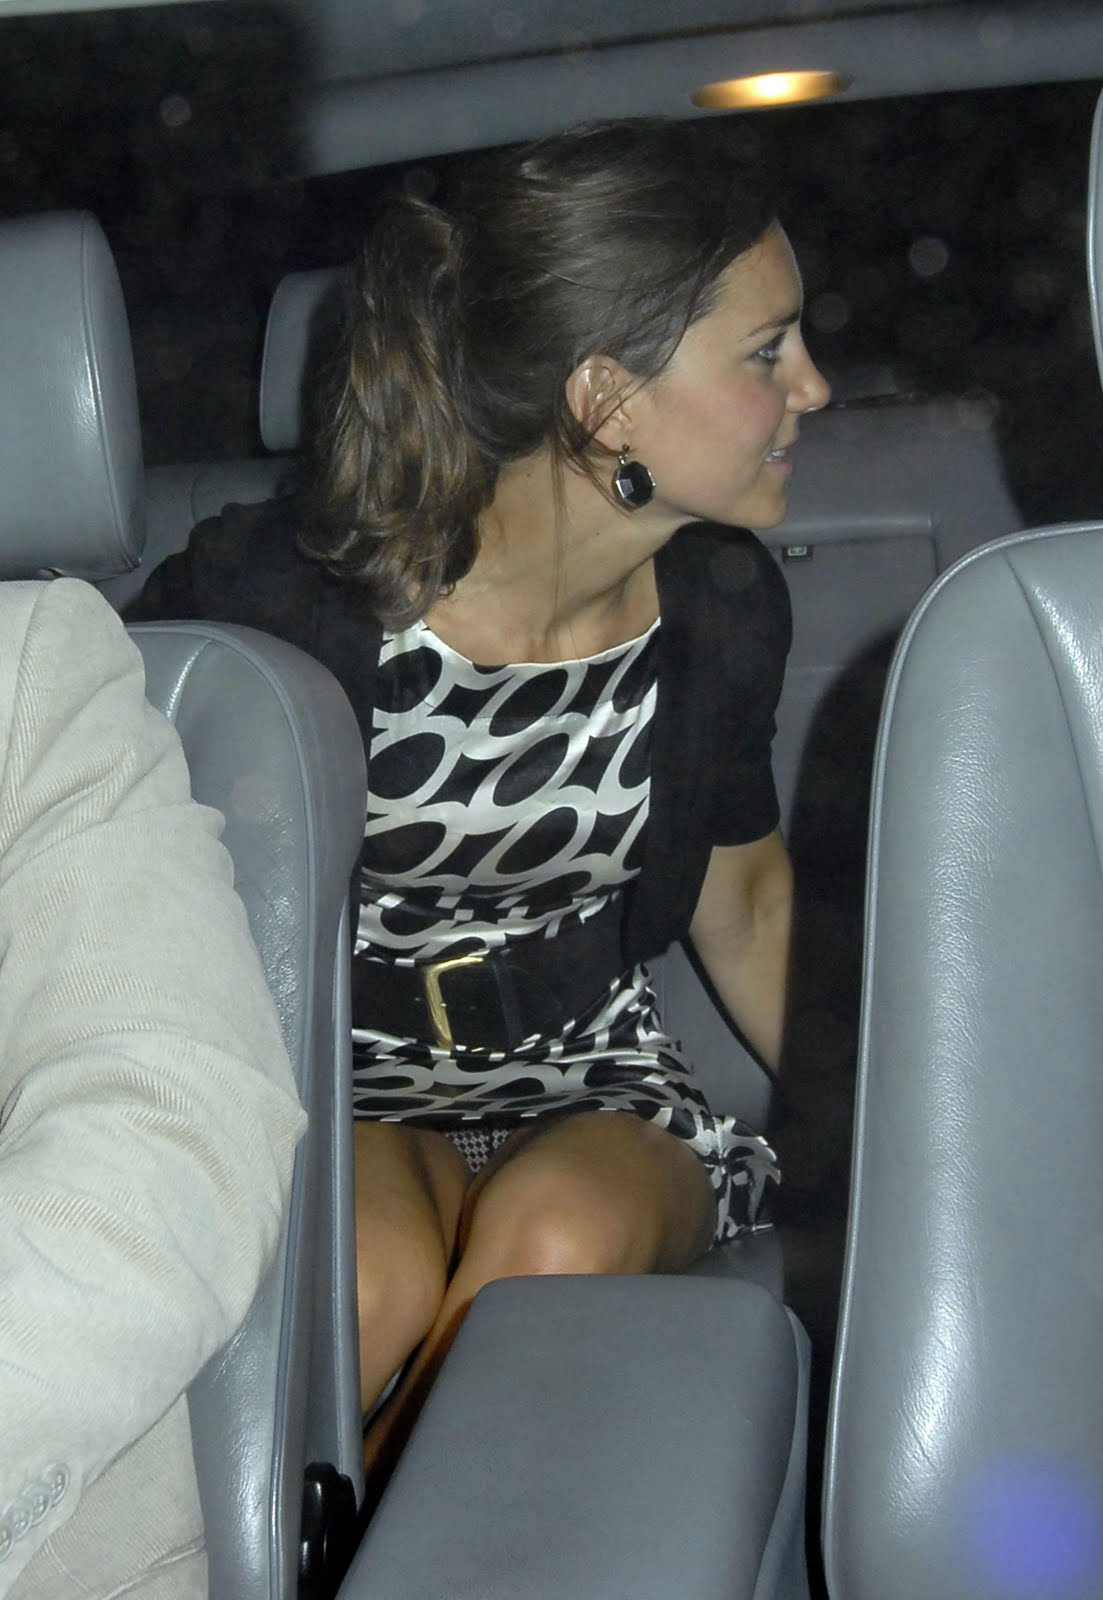 Apologise, Kate middleton up skirt what